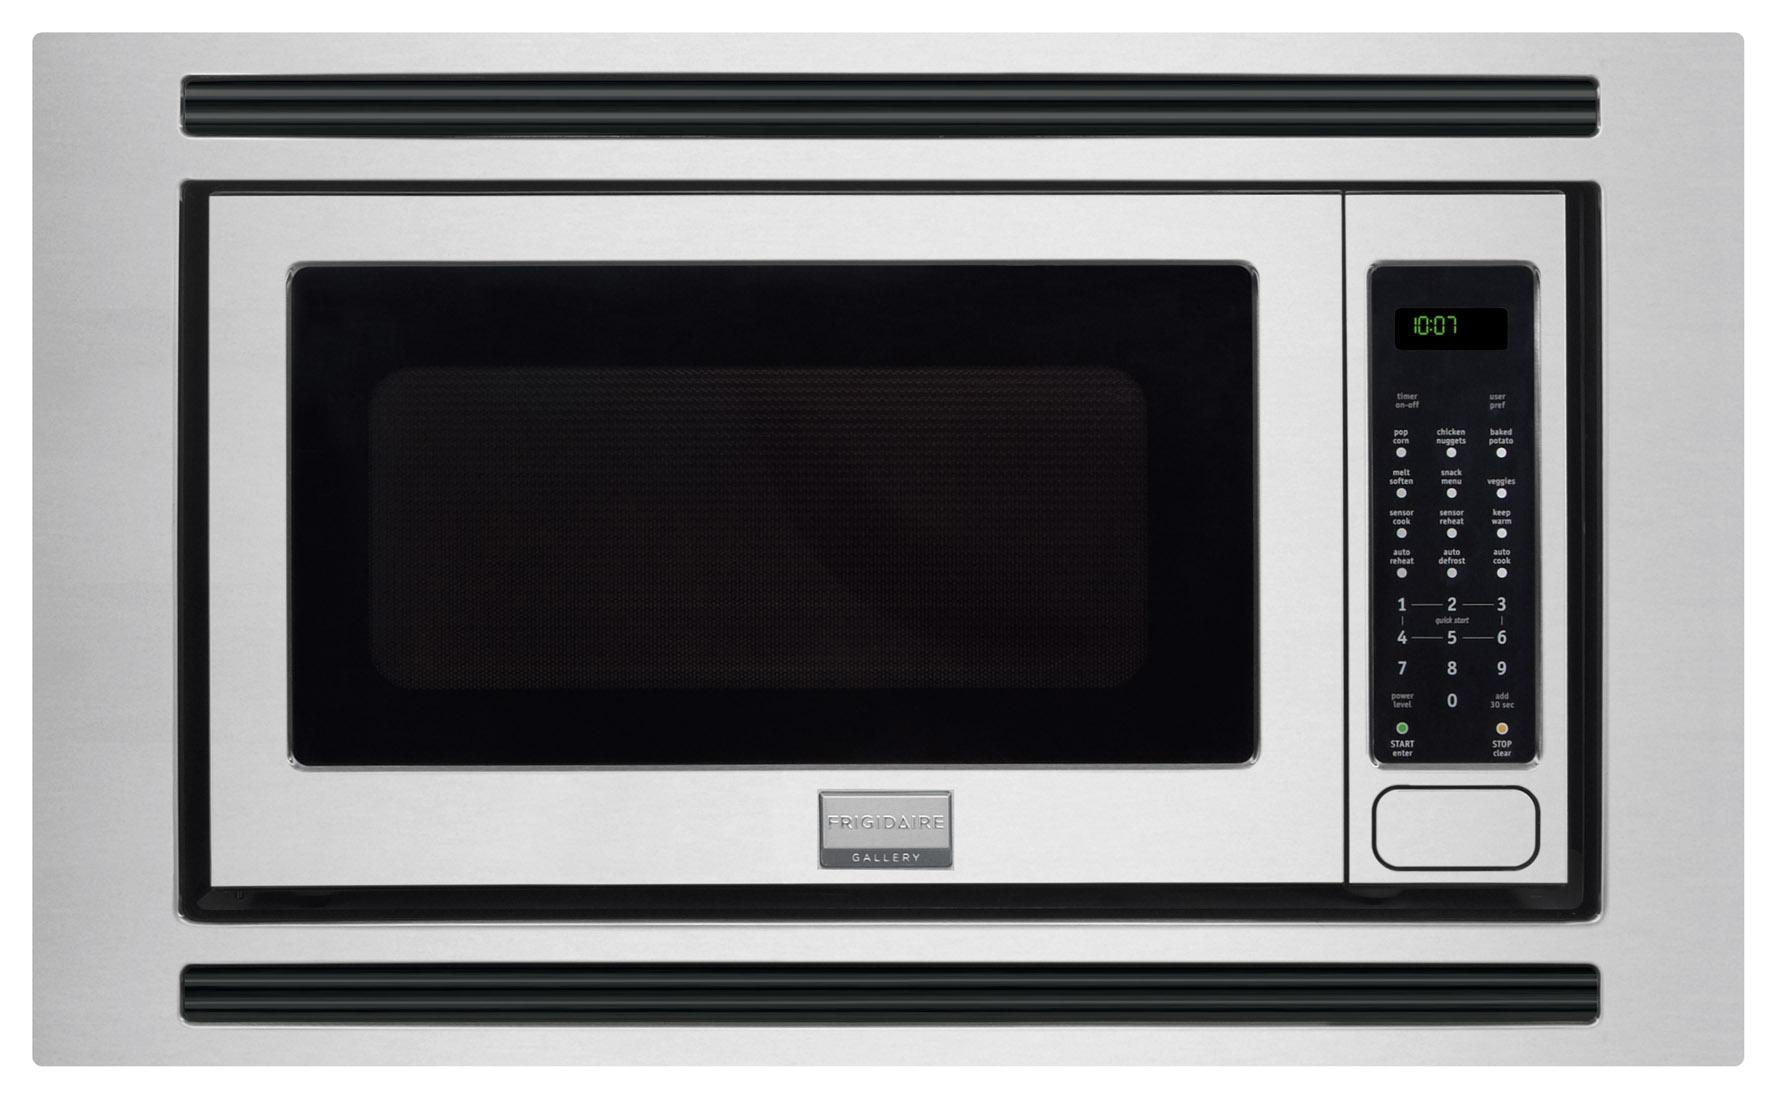 Frigidaire Microwaves 2.0 Cu. Ft. Built-In Microwave - Item Number: FGMO205KF